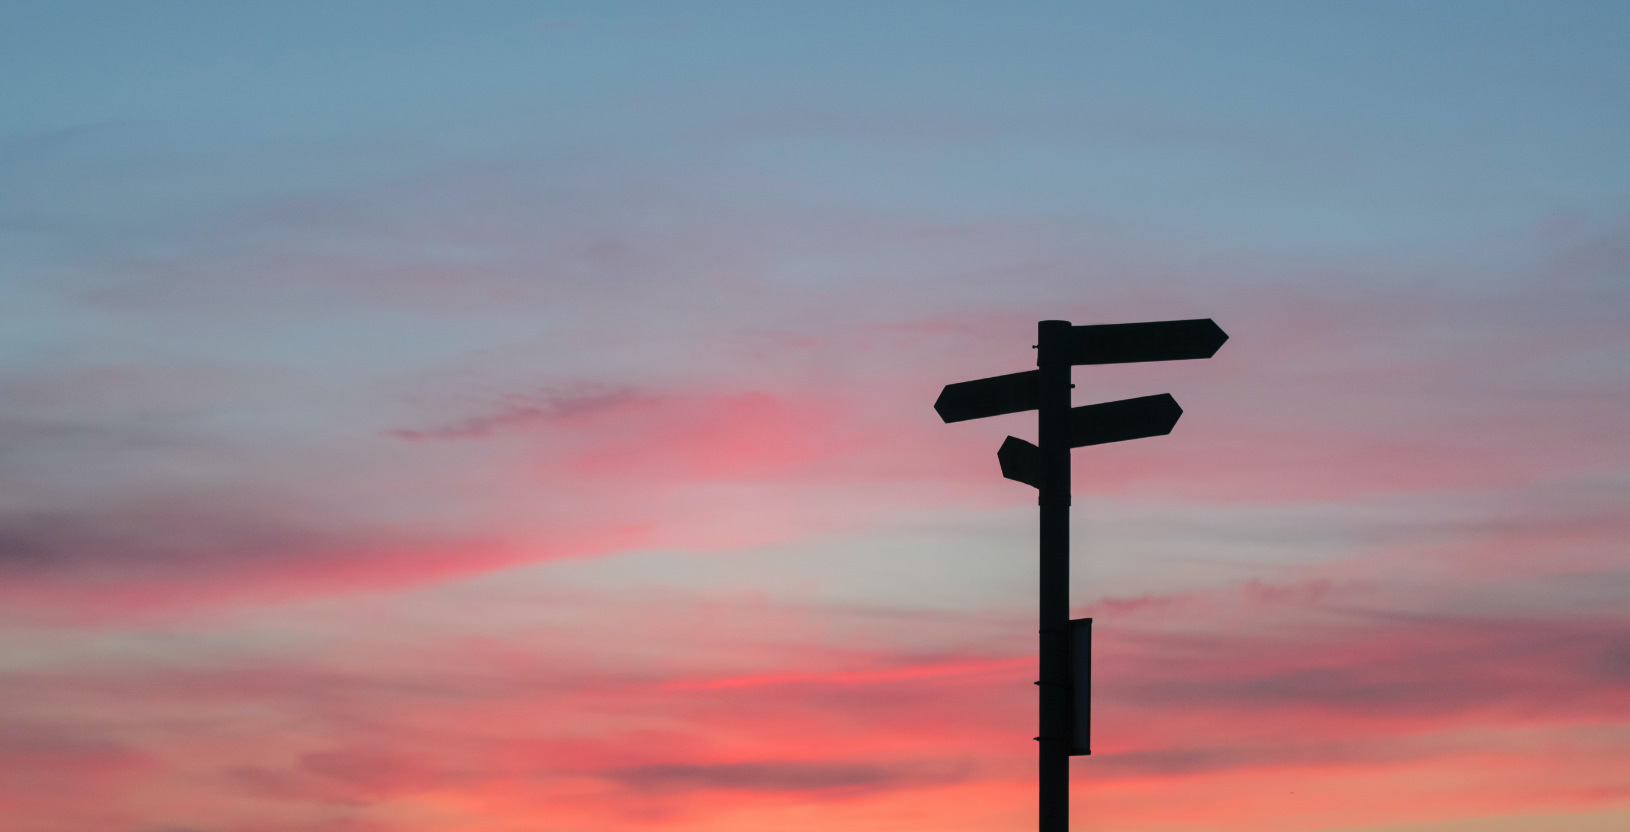 road sign silhouetted against the sunset sky